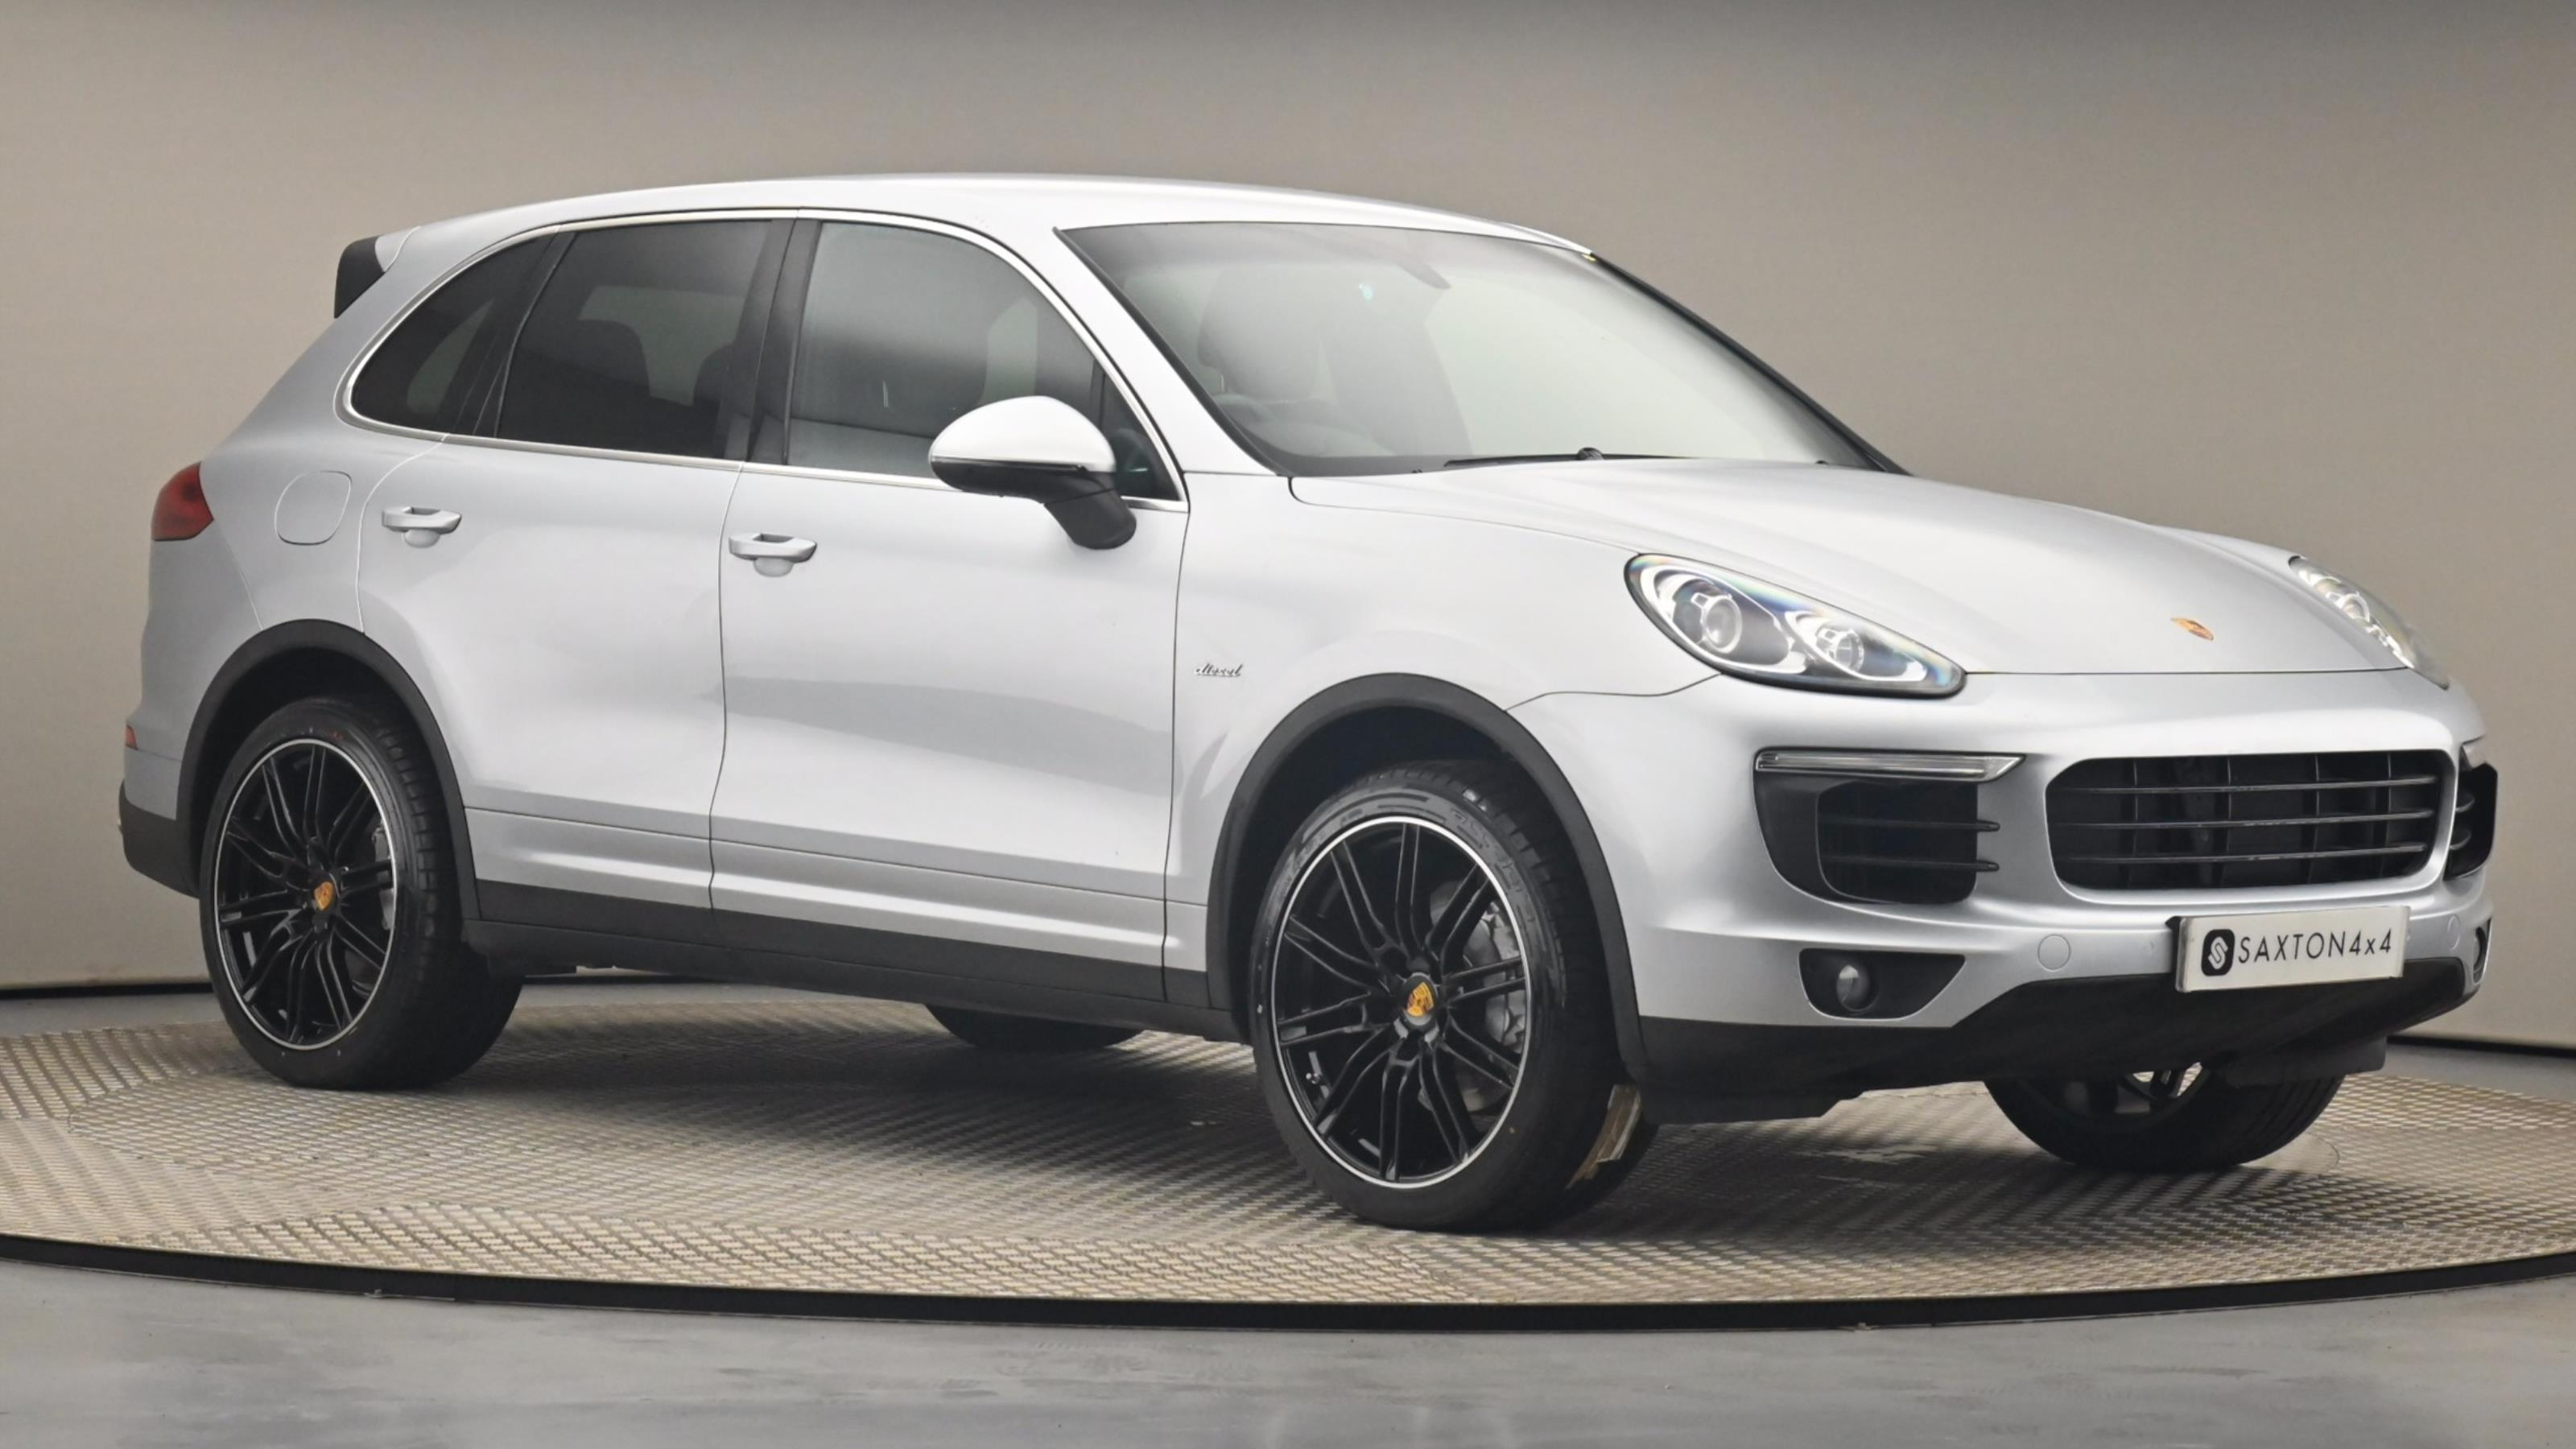 Used 14 Porsche CAYENNE Diesel 5dr Tiptronic S Silver at Saxton4x4